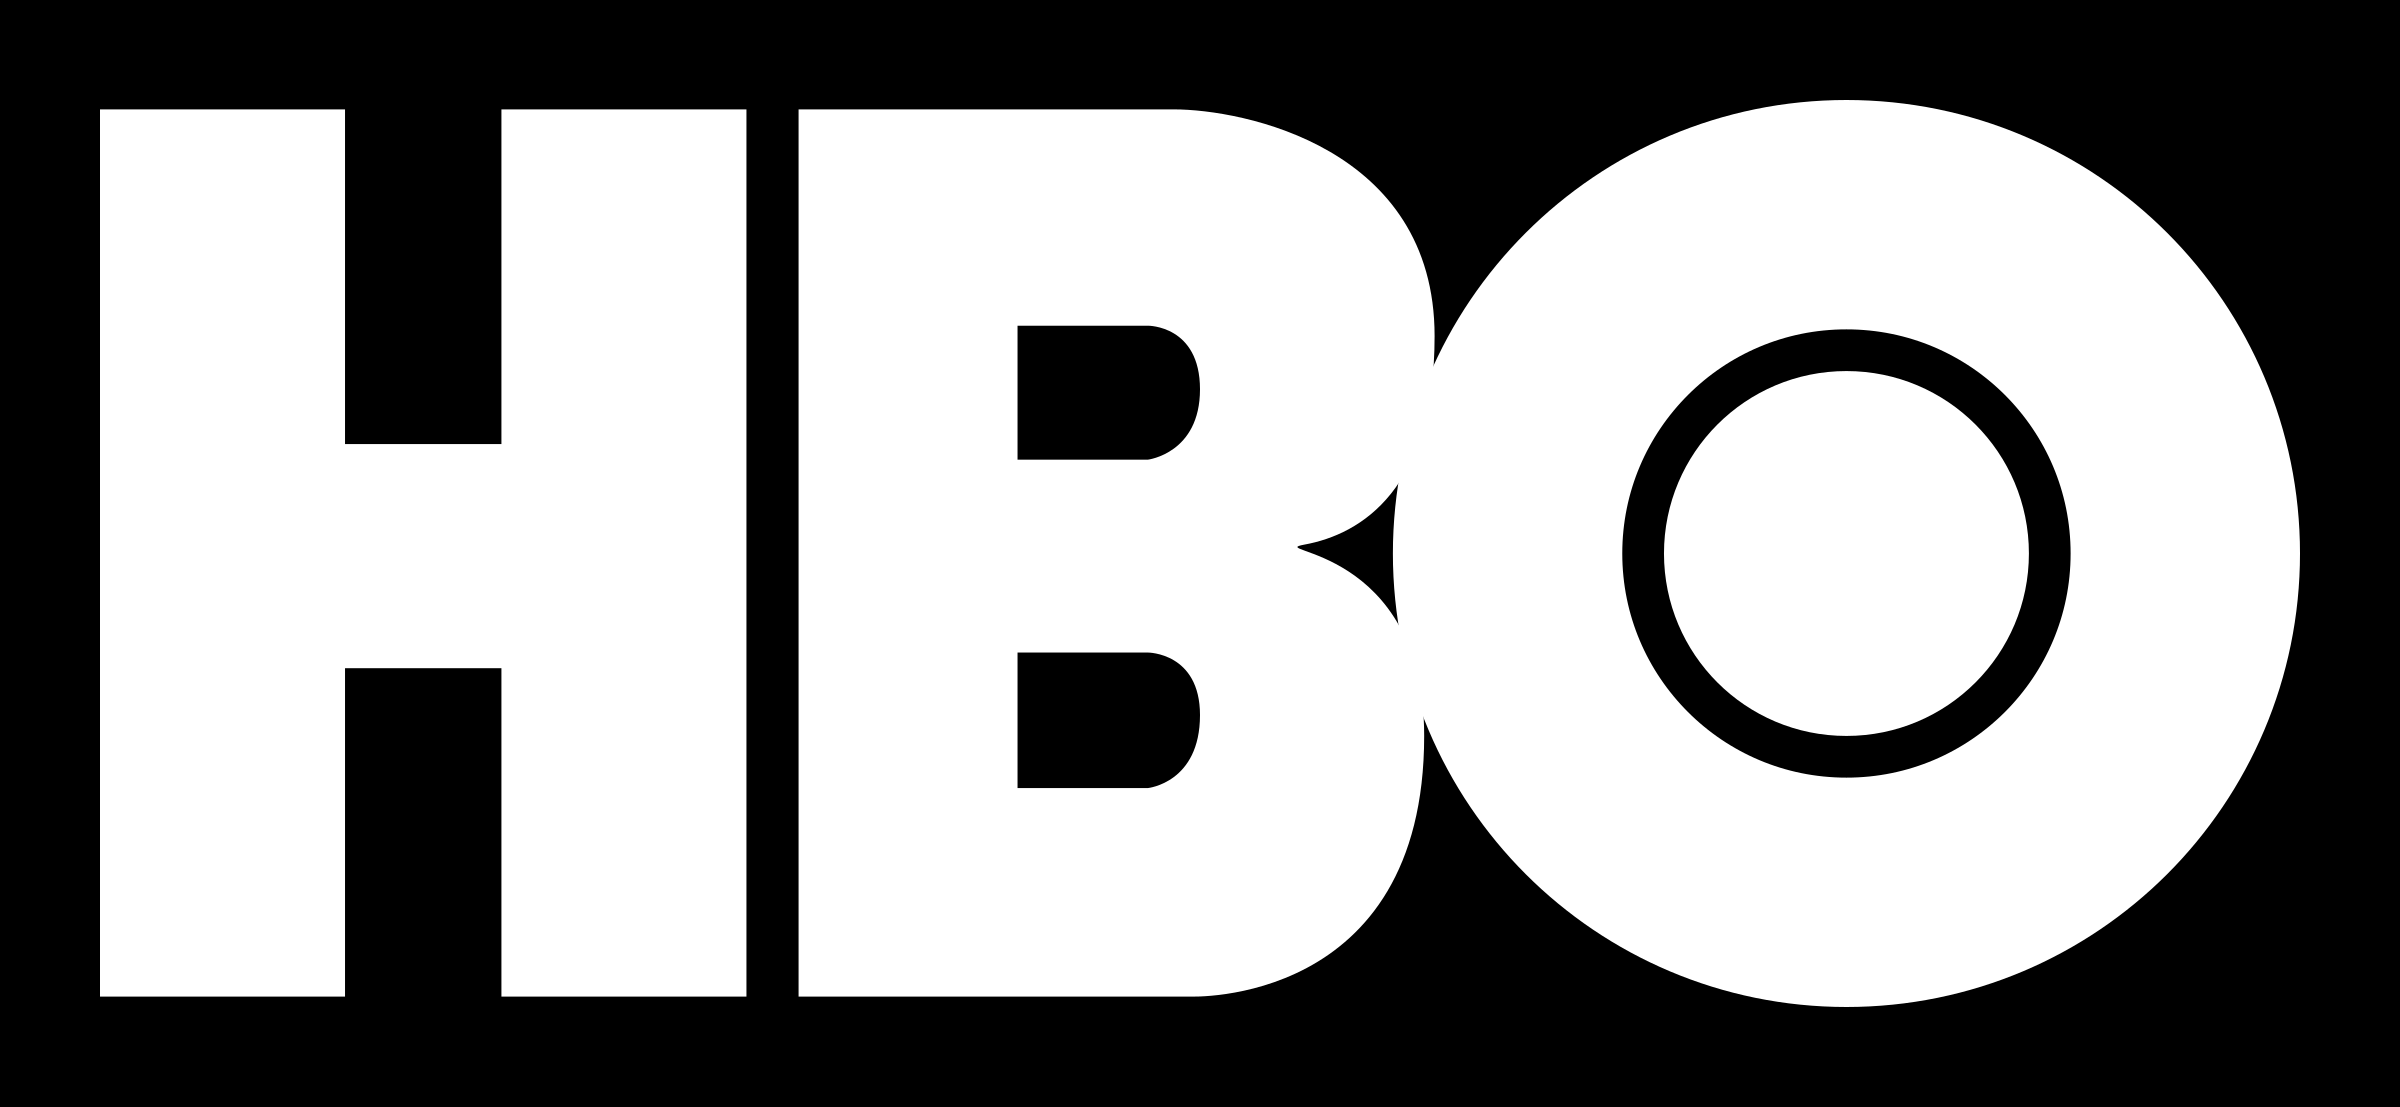 hbo-logo-black-and-white